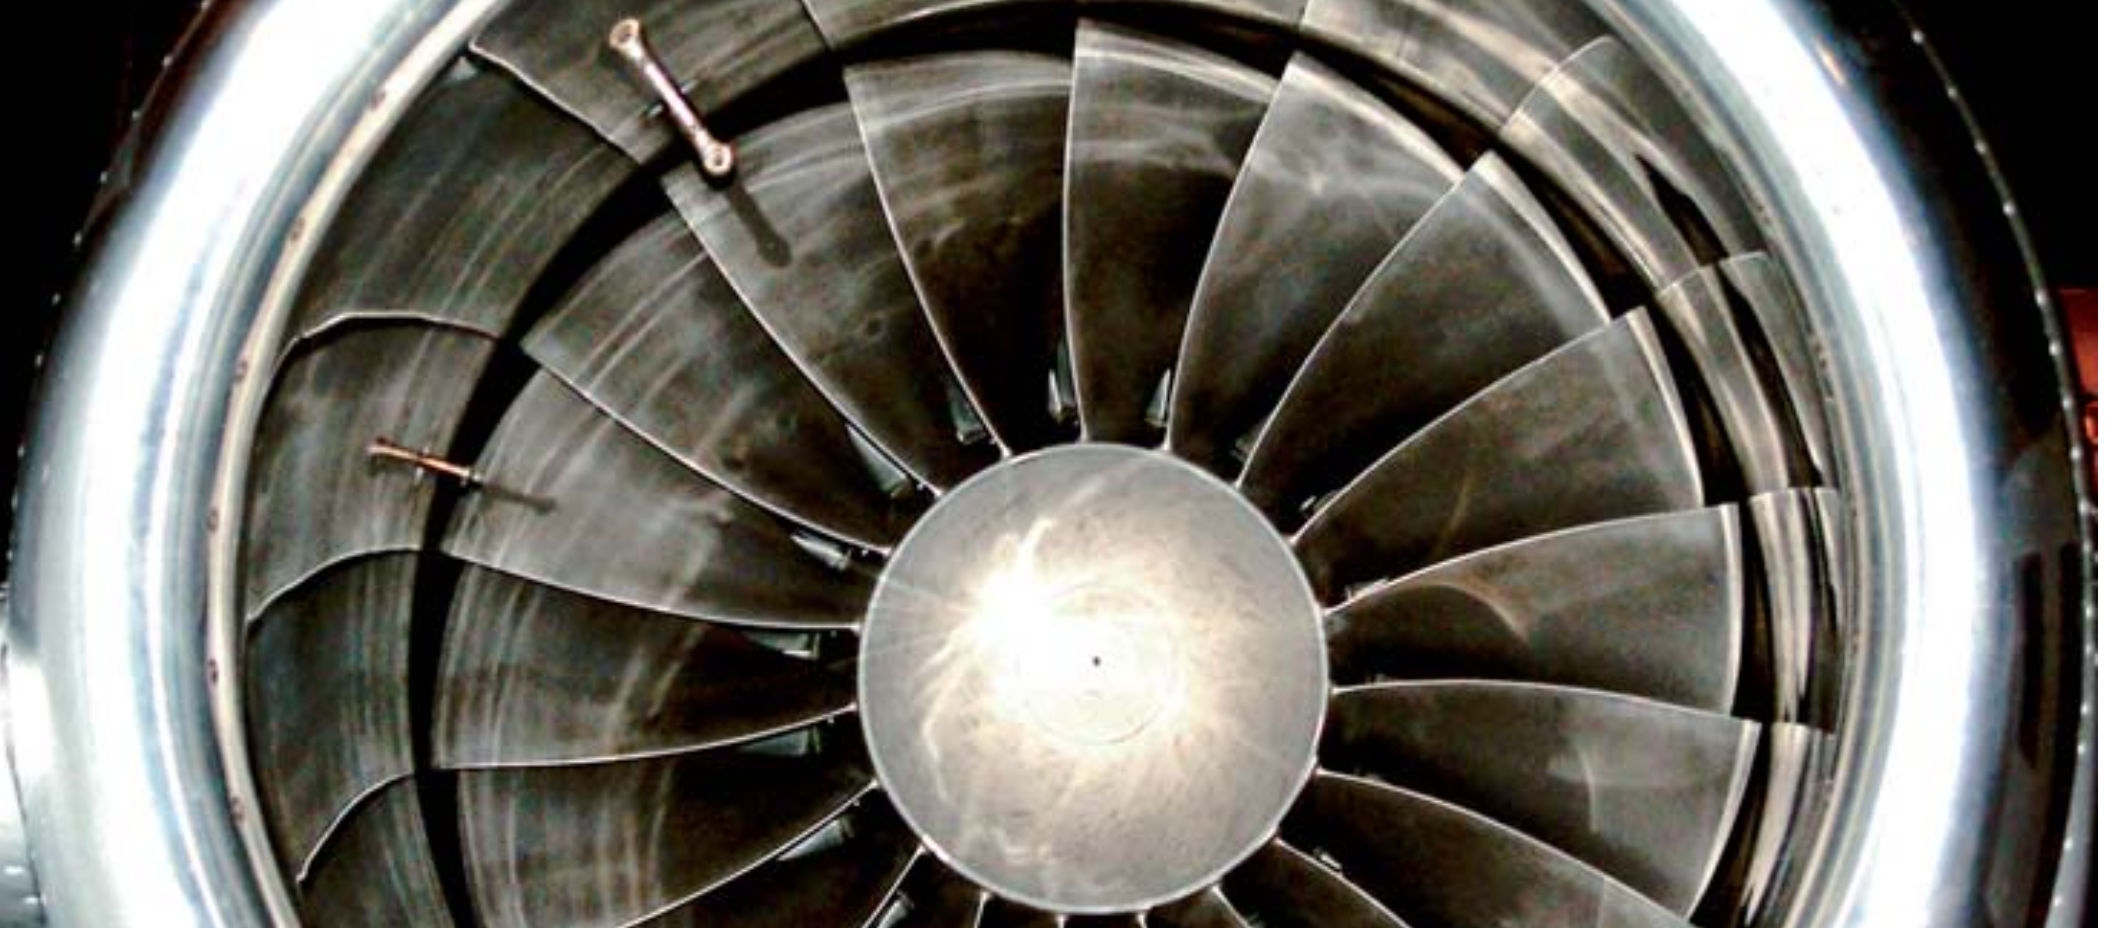 The future of aircraft propulsion